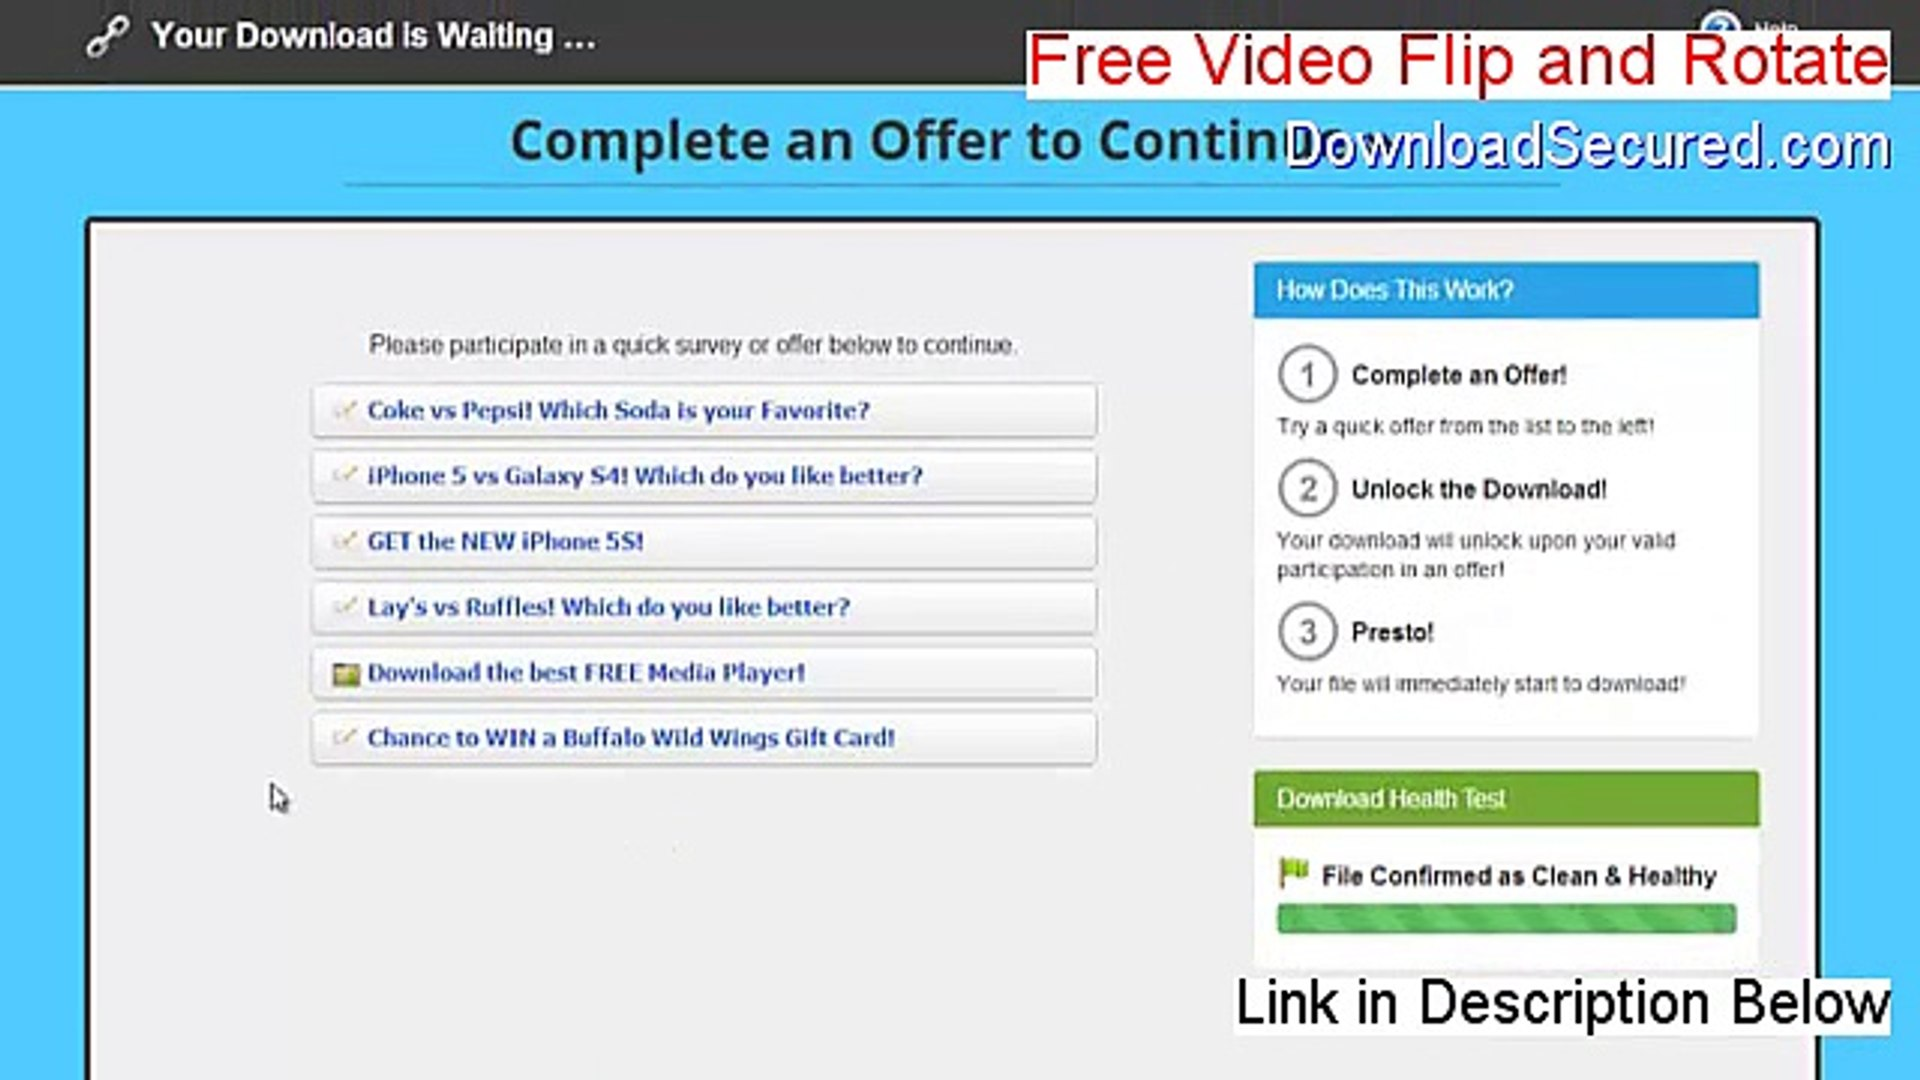 free video flip and rotate premium key